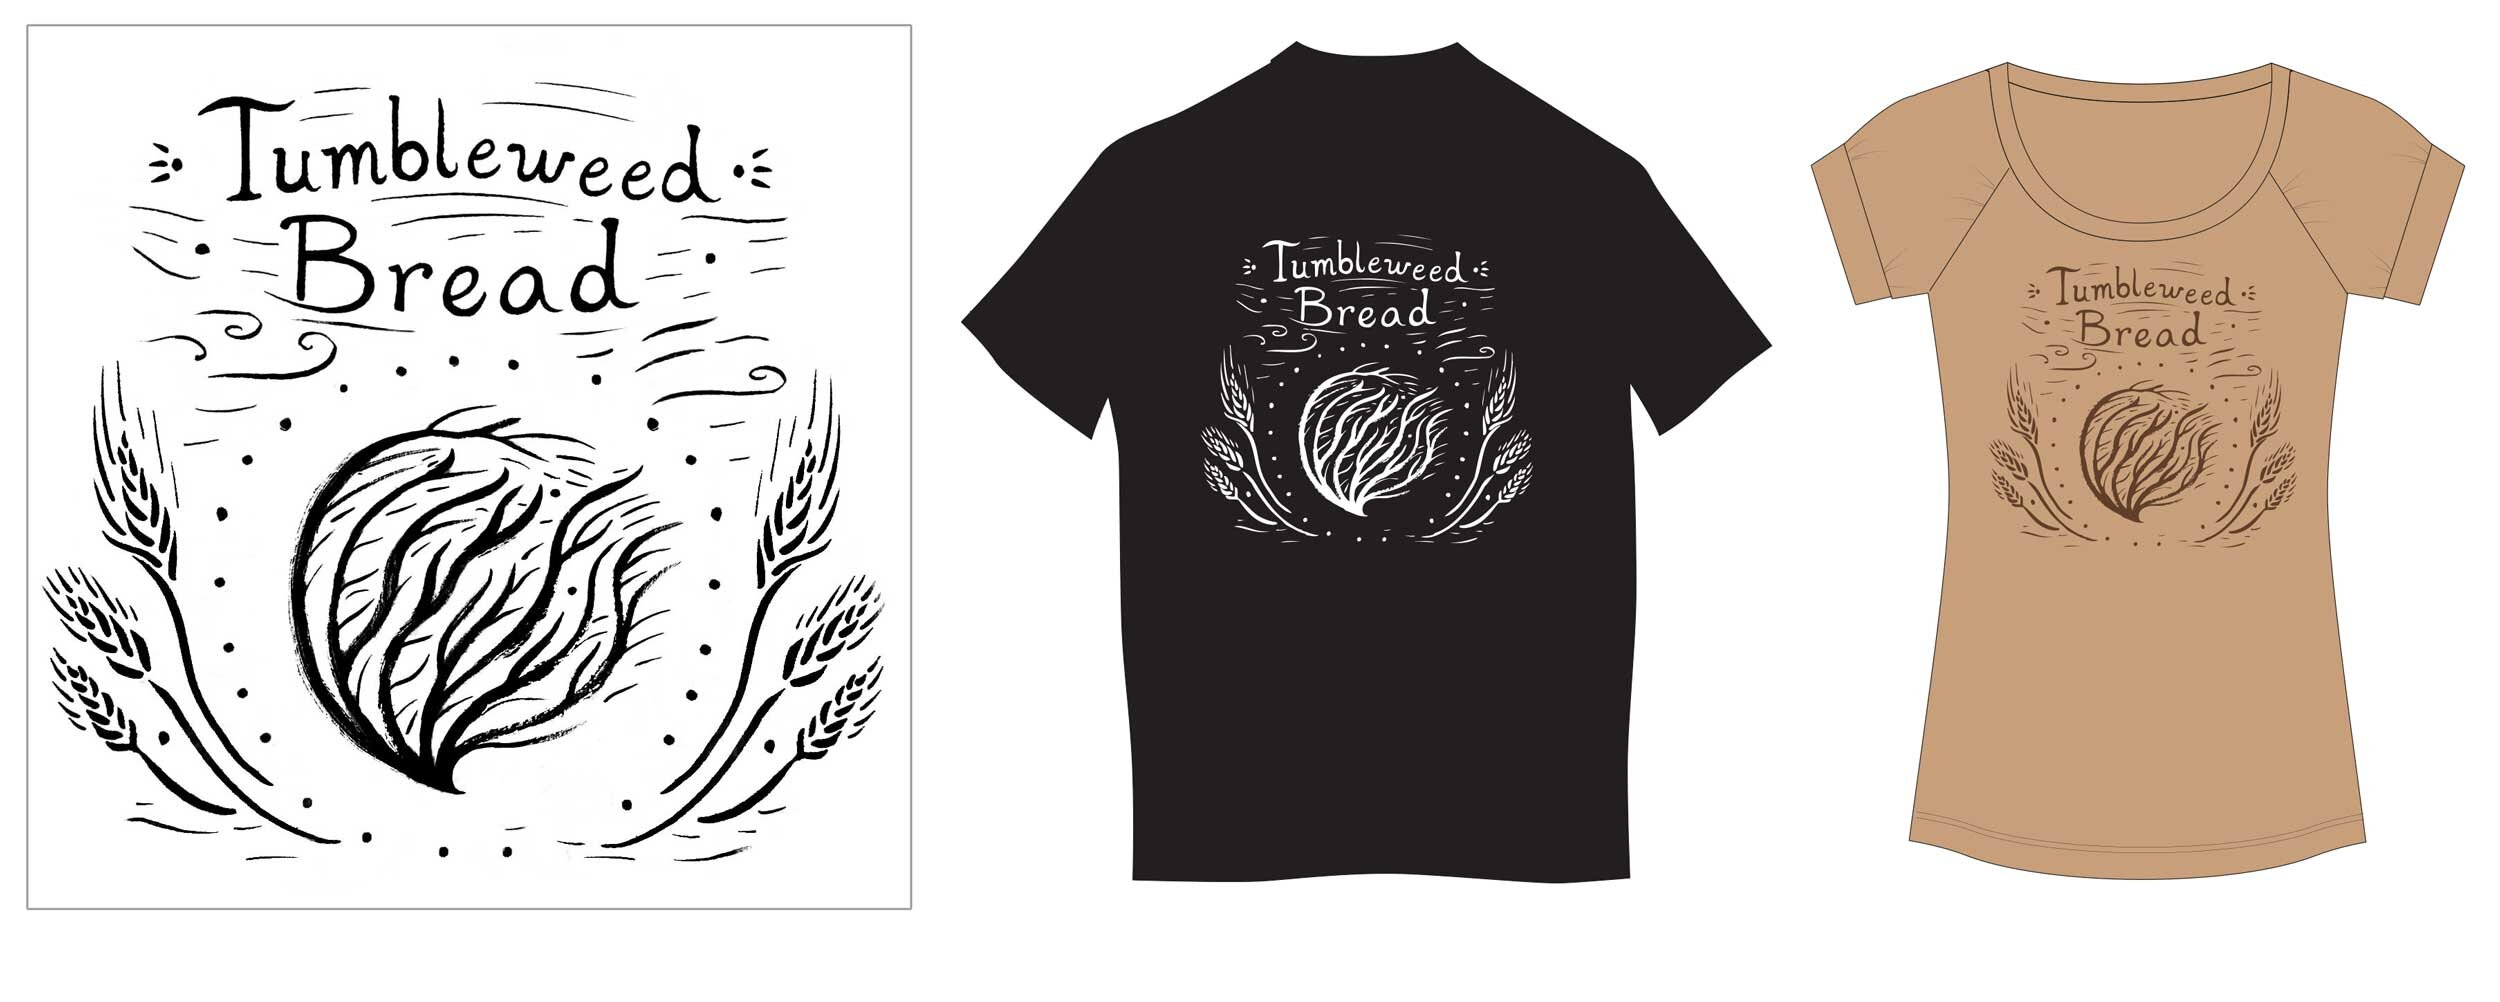 Logo for Tumble Weed Bread Company